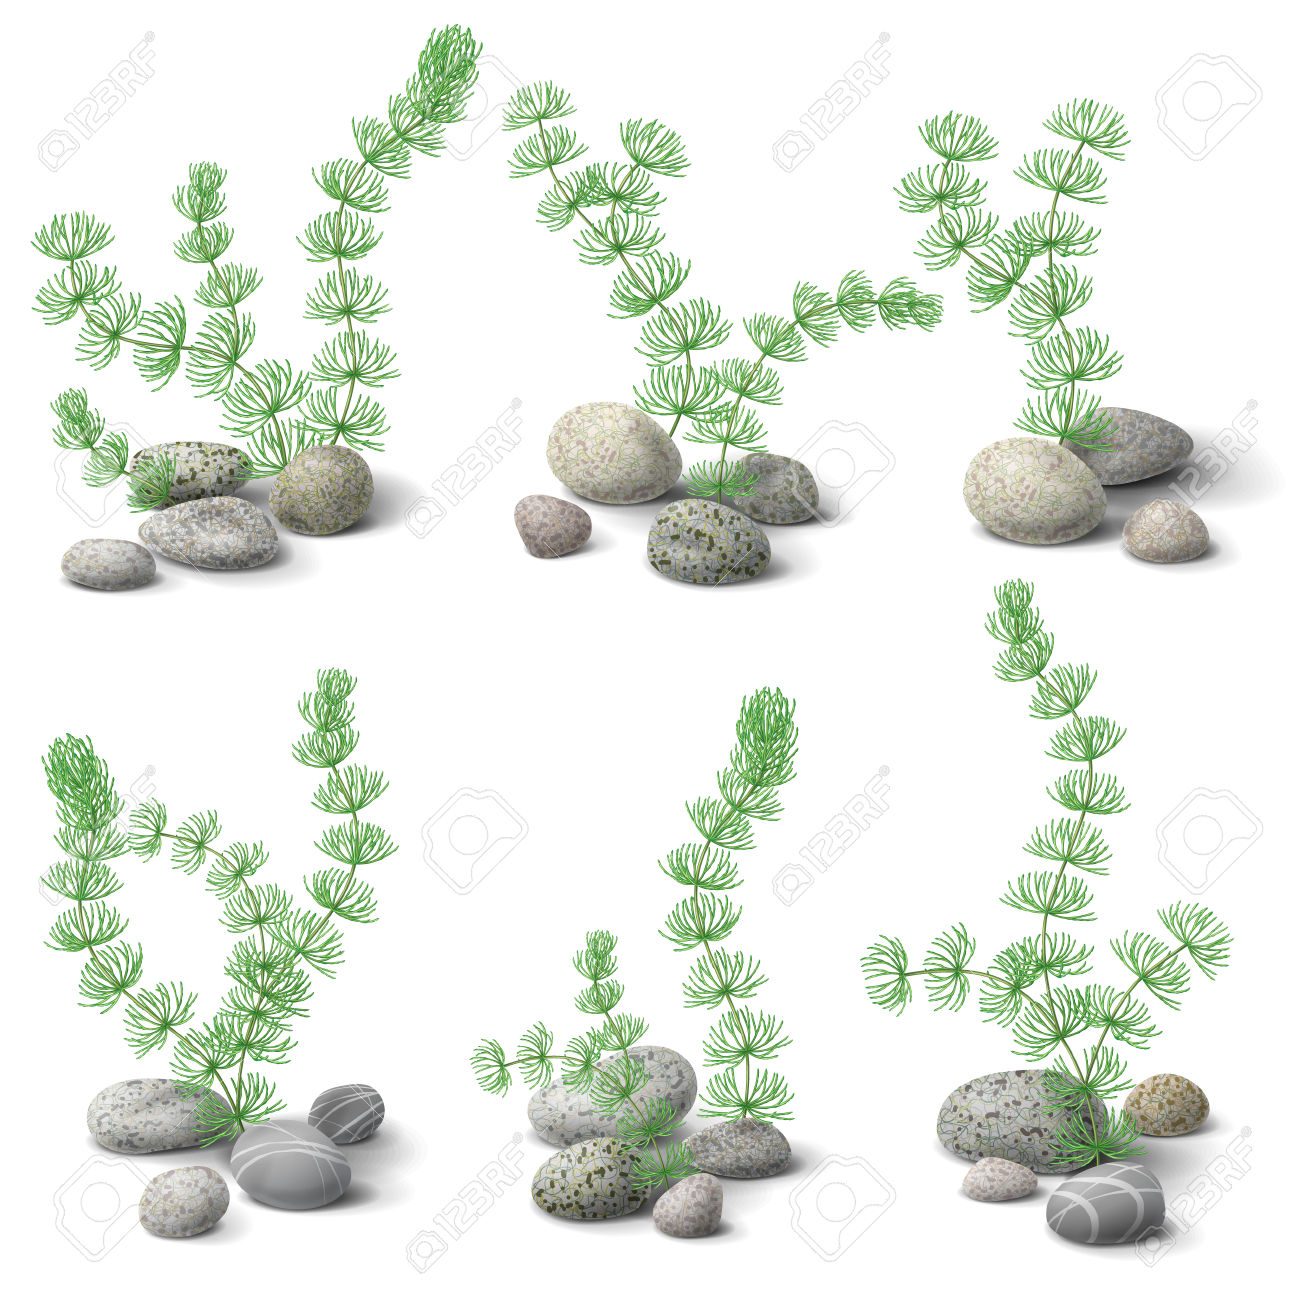 Green Hornwort Algae And Pebbles Set Isolated On White. Royalty.